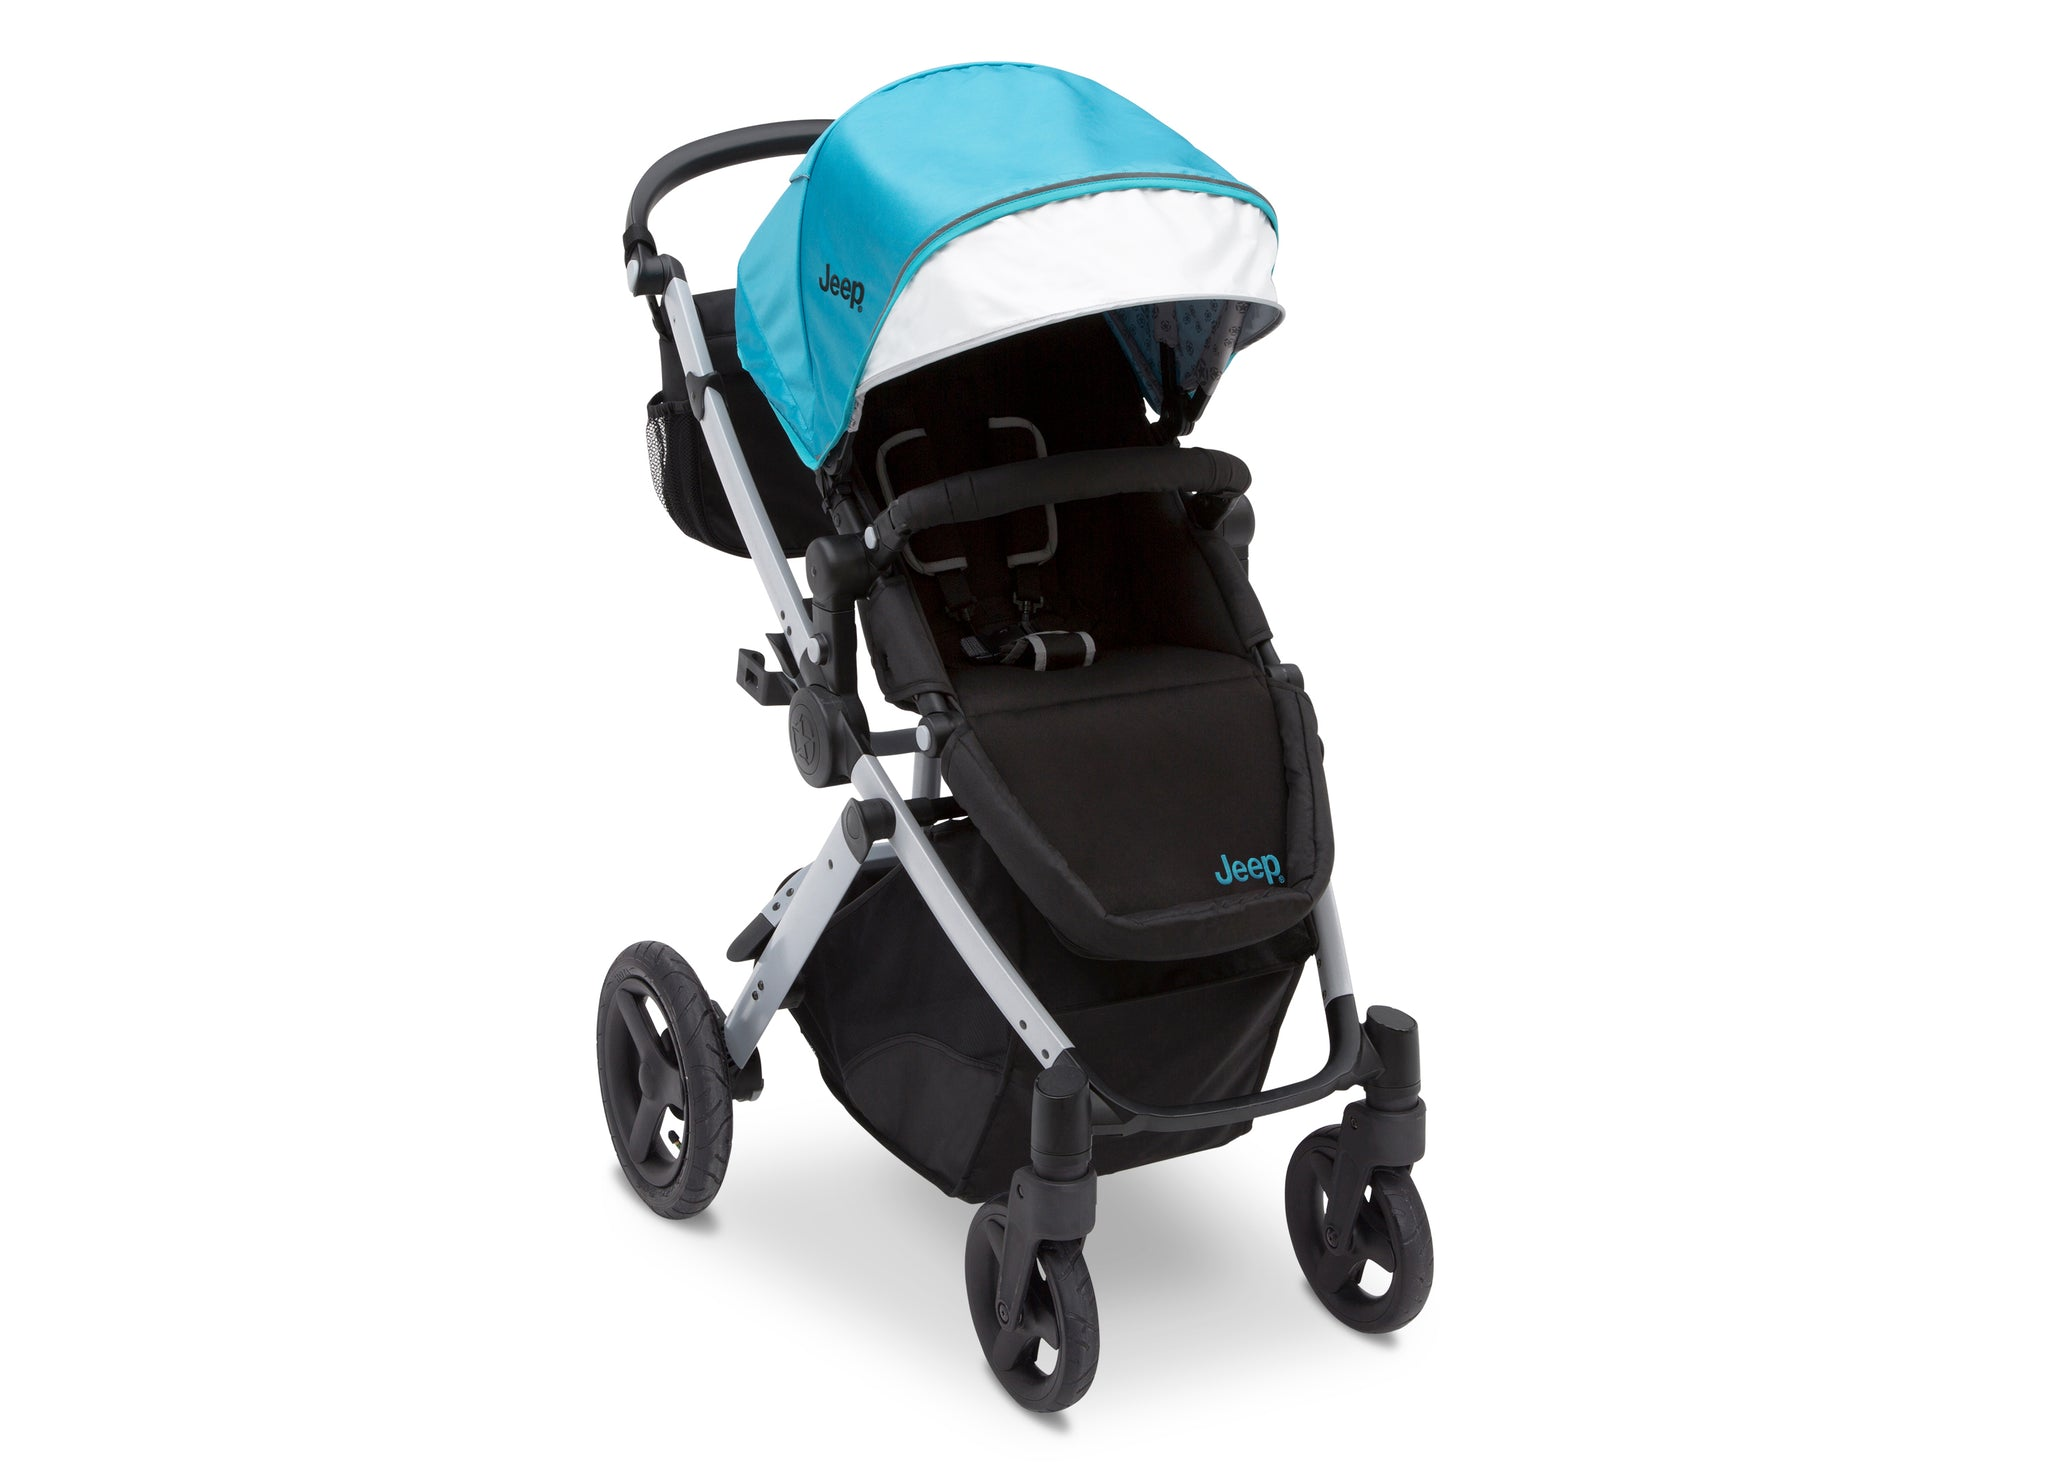 Jeep Brand Sport Utility All-Terrain Stroller by Delta Children, Aqua on Silver (2403), with extendable European-style canopy